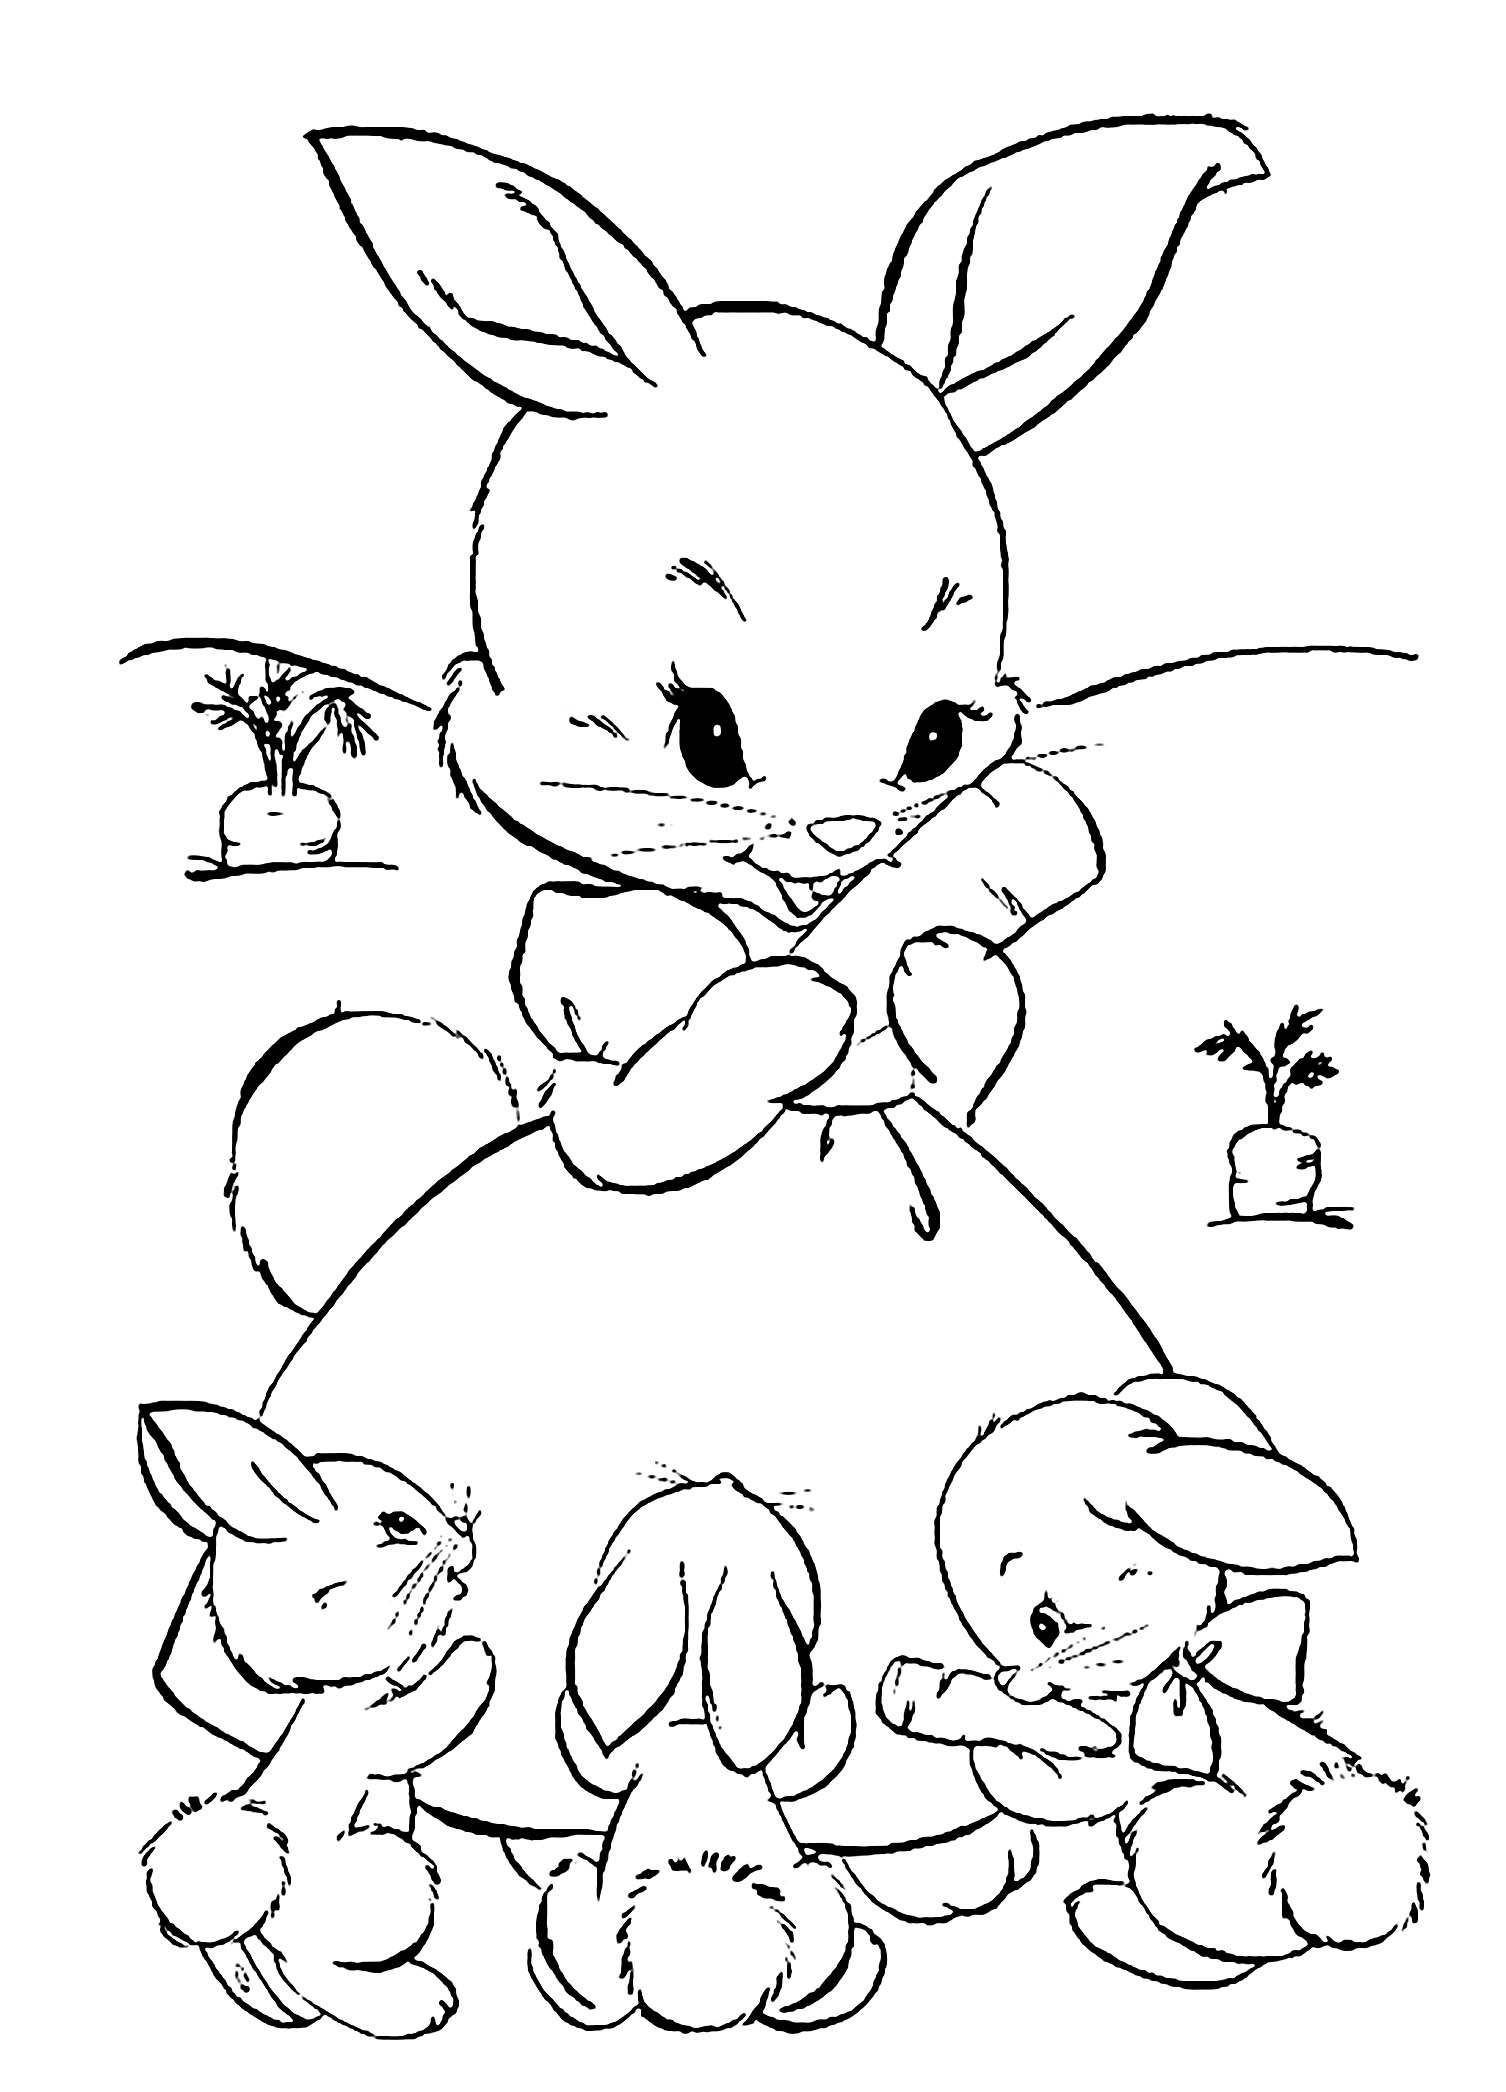 coloring pictures rabbit rabbit to color for children rabbit kids coloring pages rabbit pictures coloring